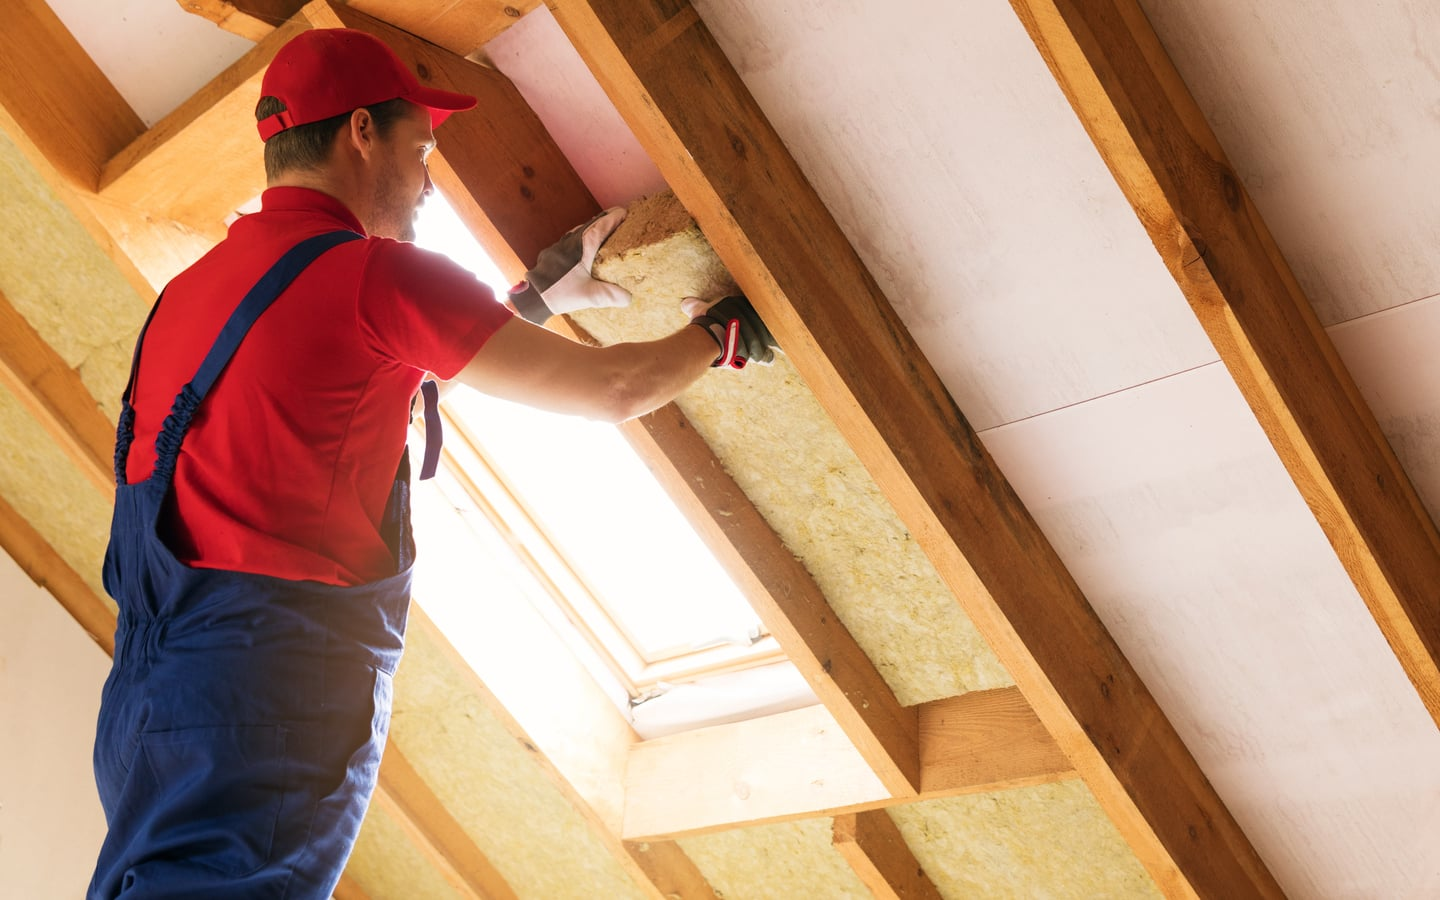 Insulate the walls of your house to make it more eco-friendly